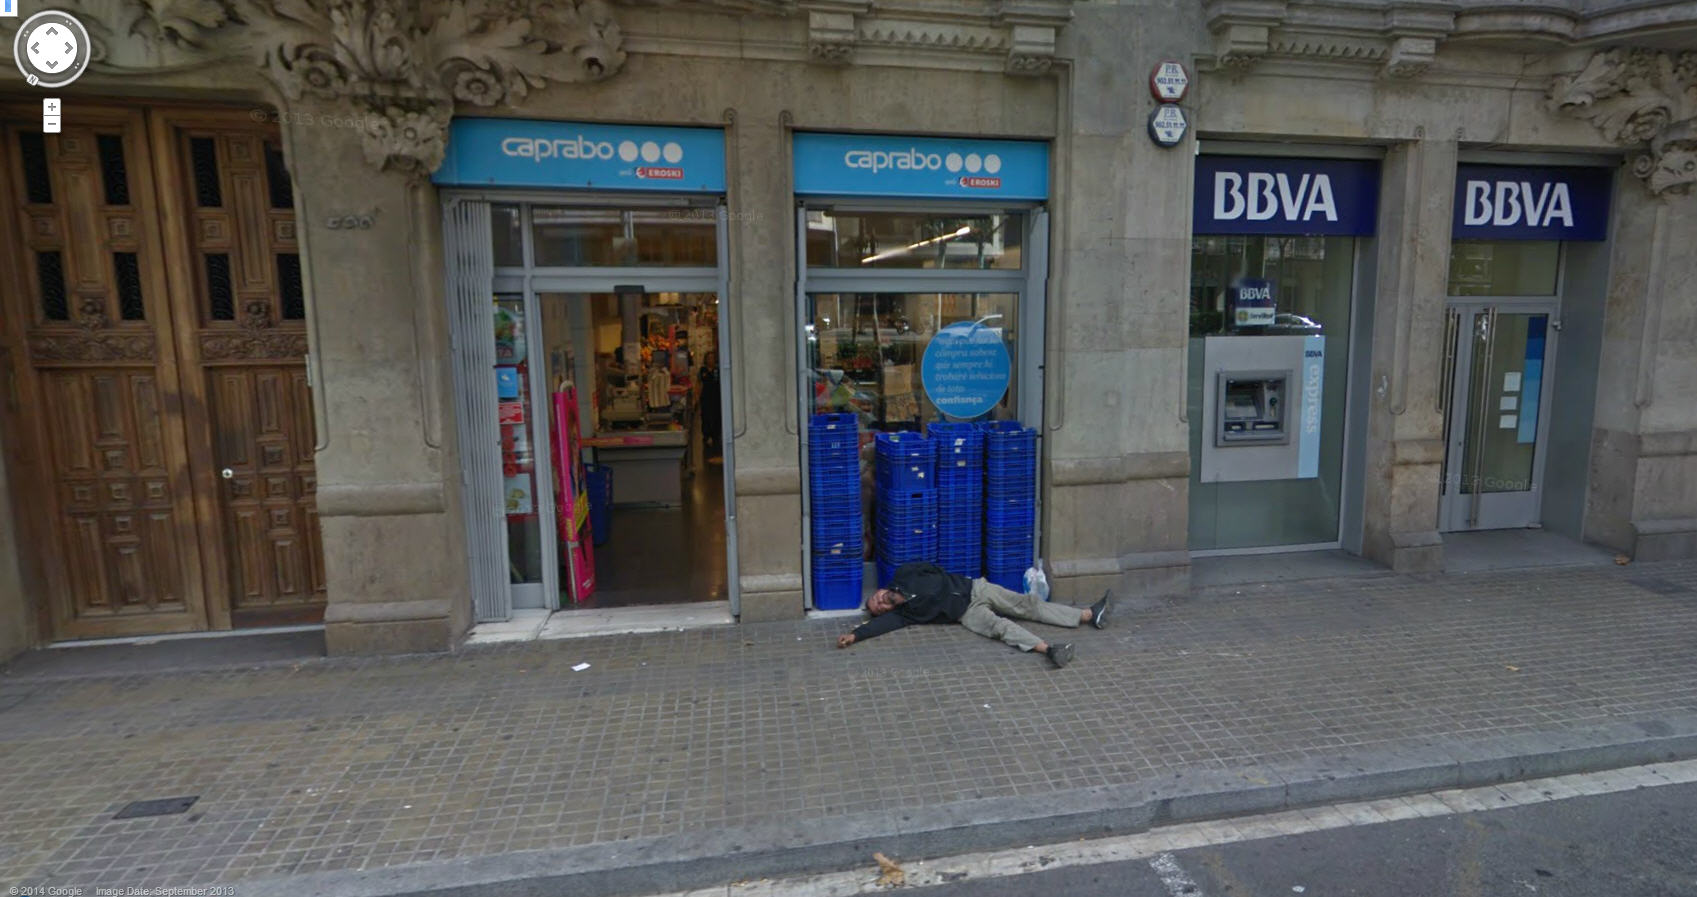 Down and Out in Barcelona